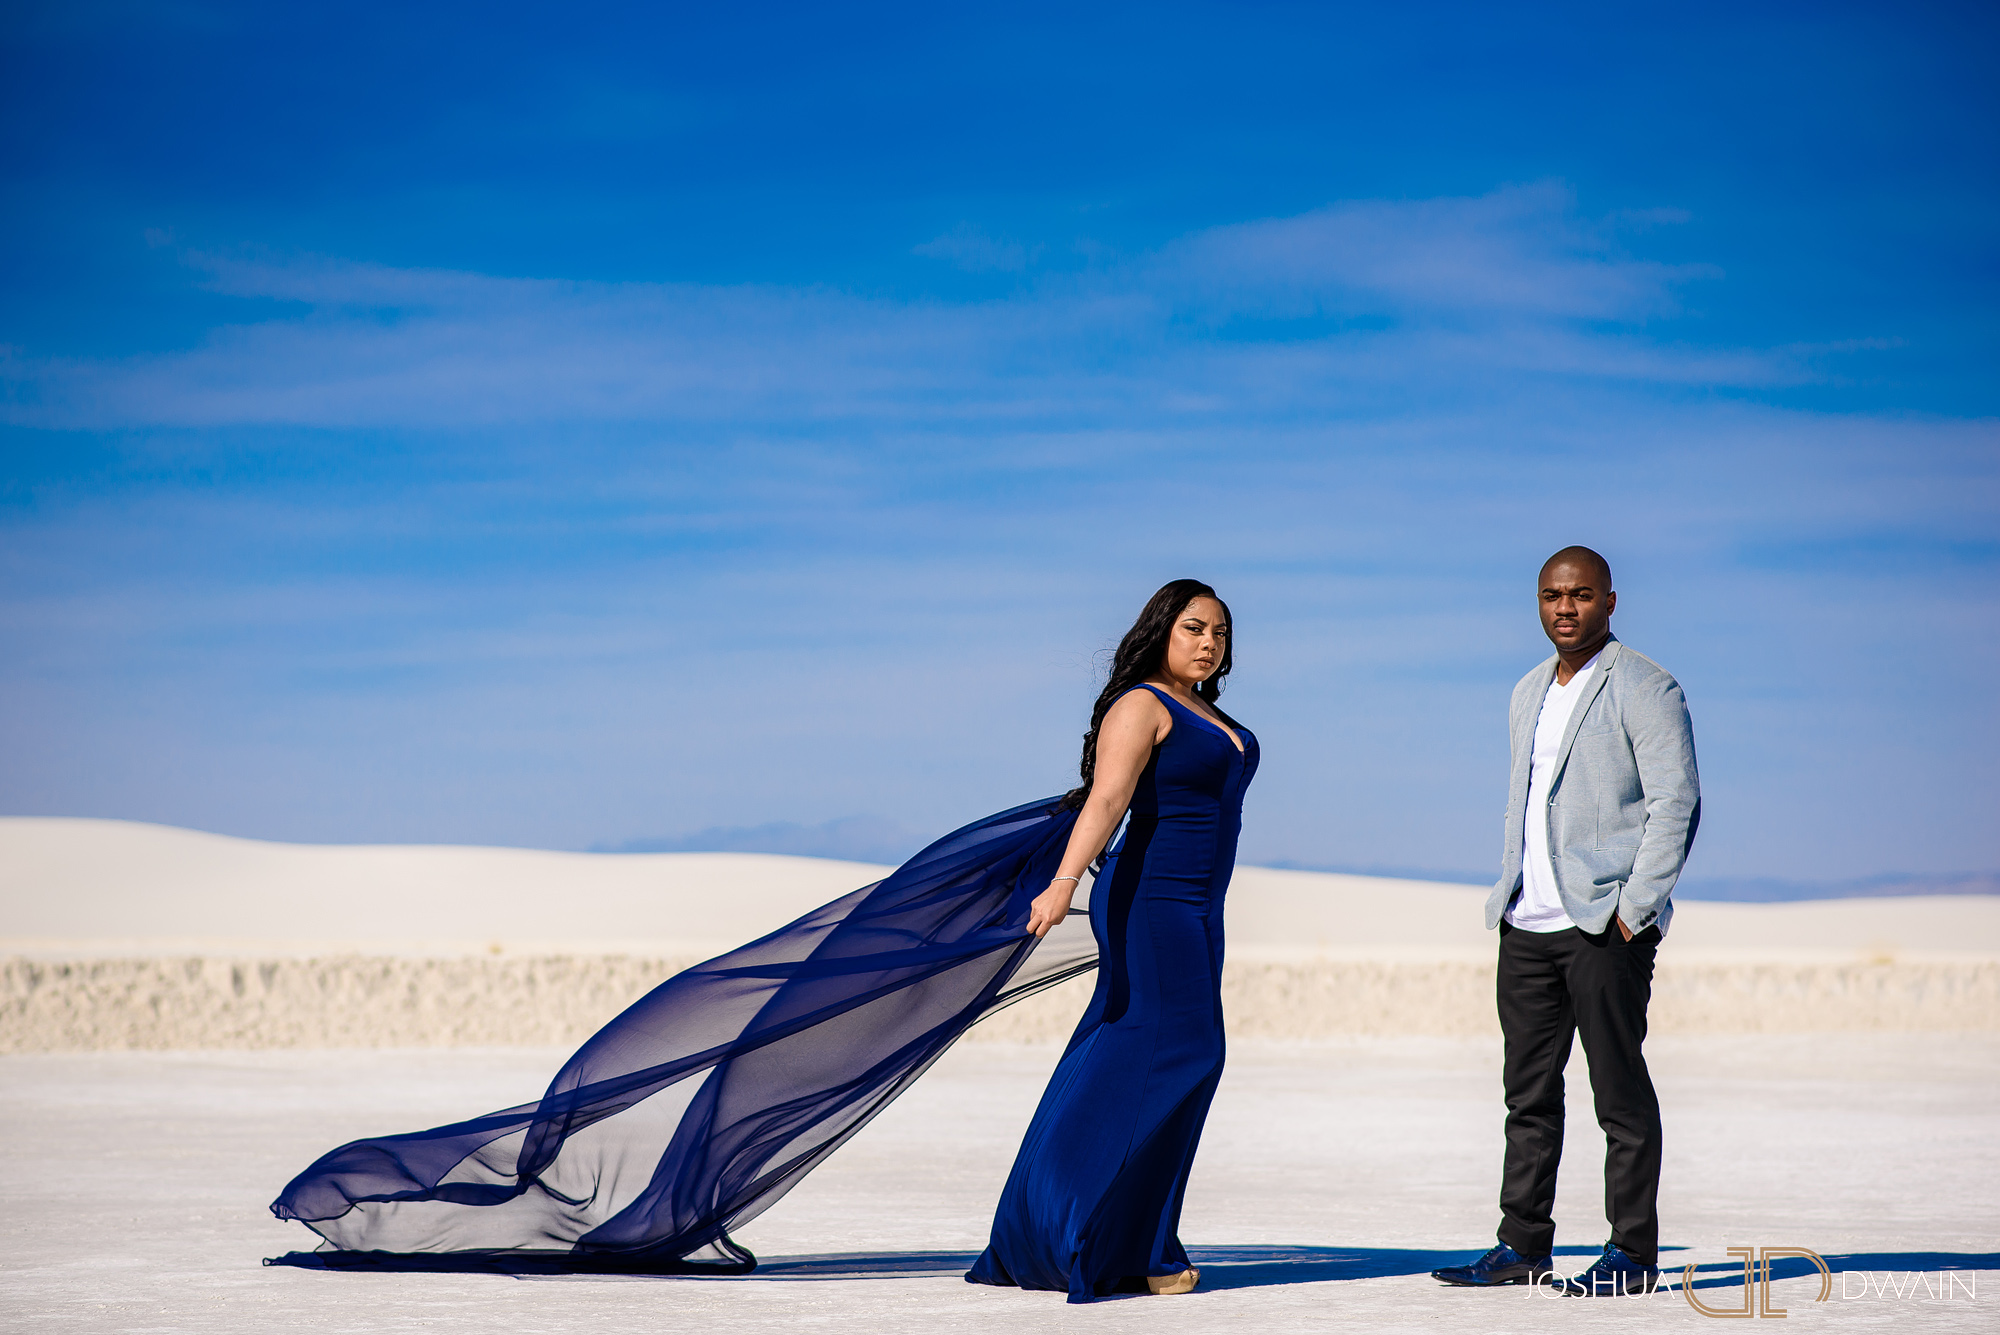 brianna-william-01-white-sands-monument-national-park-new-mexico-engagement-photographer-joshua-dwain-